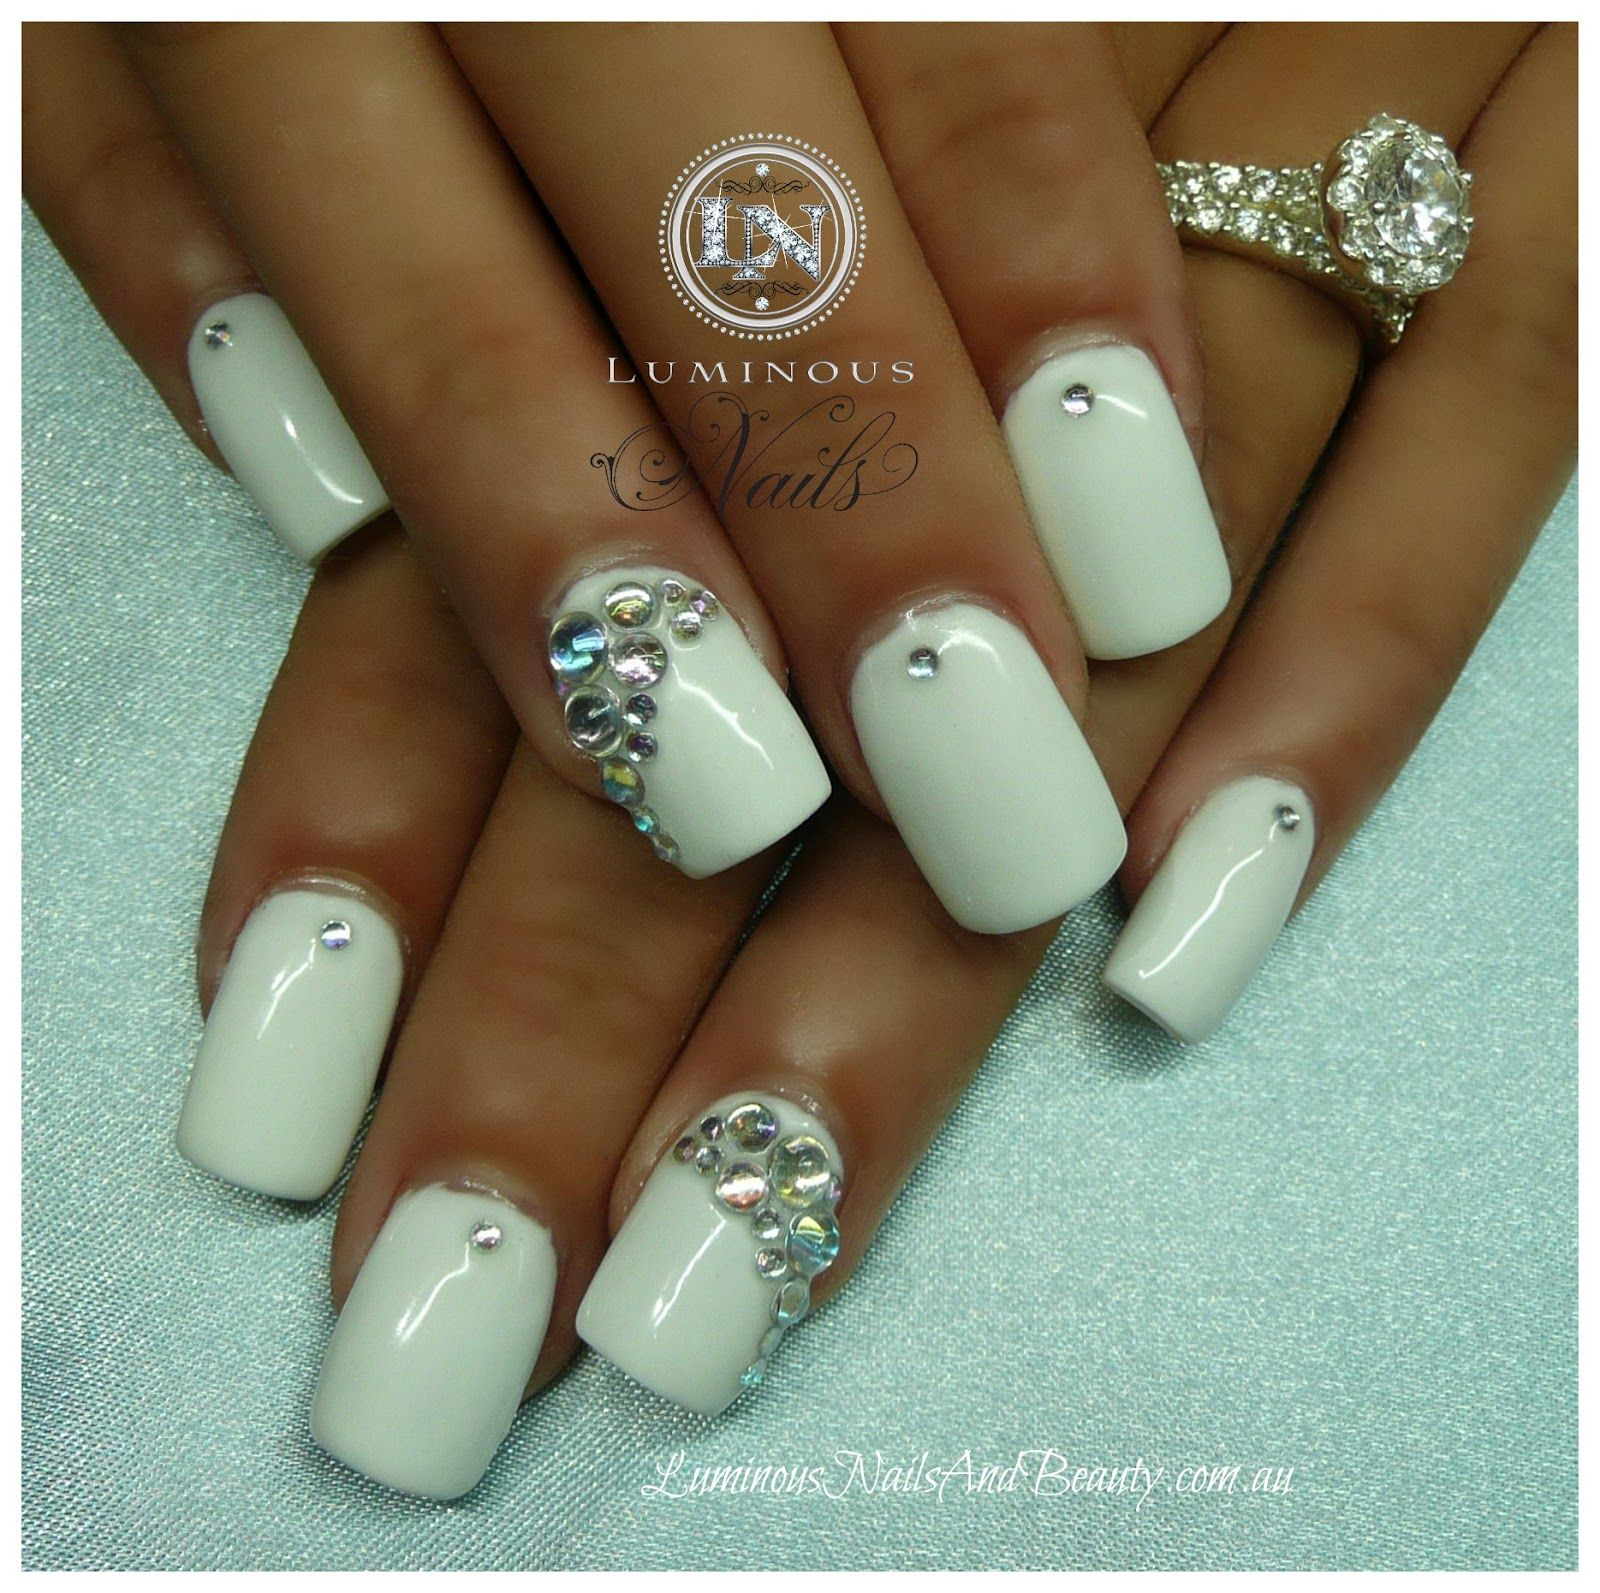 Acrylic Nails with Rhinestones | White Gel Nails with Crystals ...